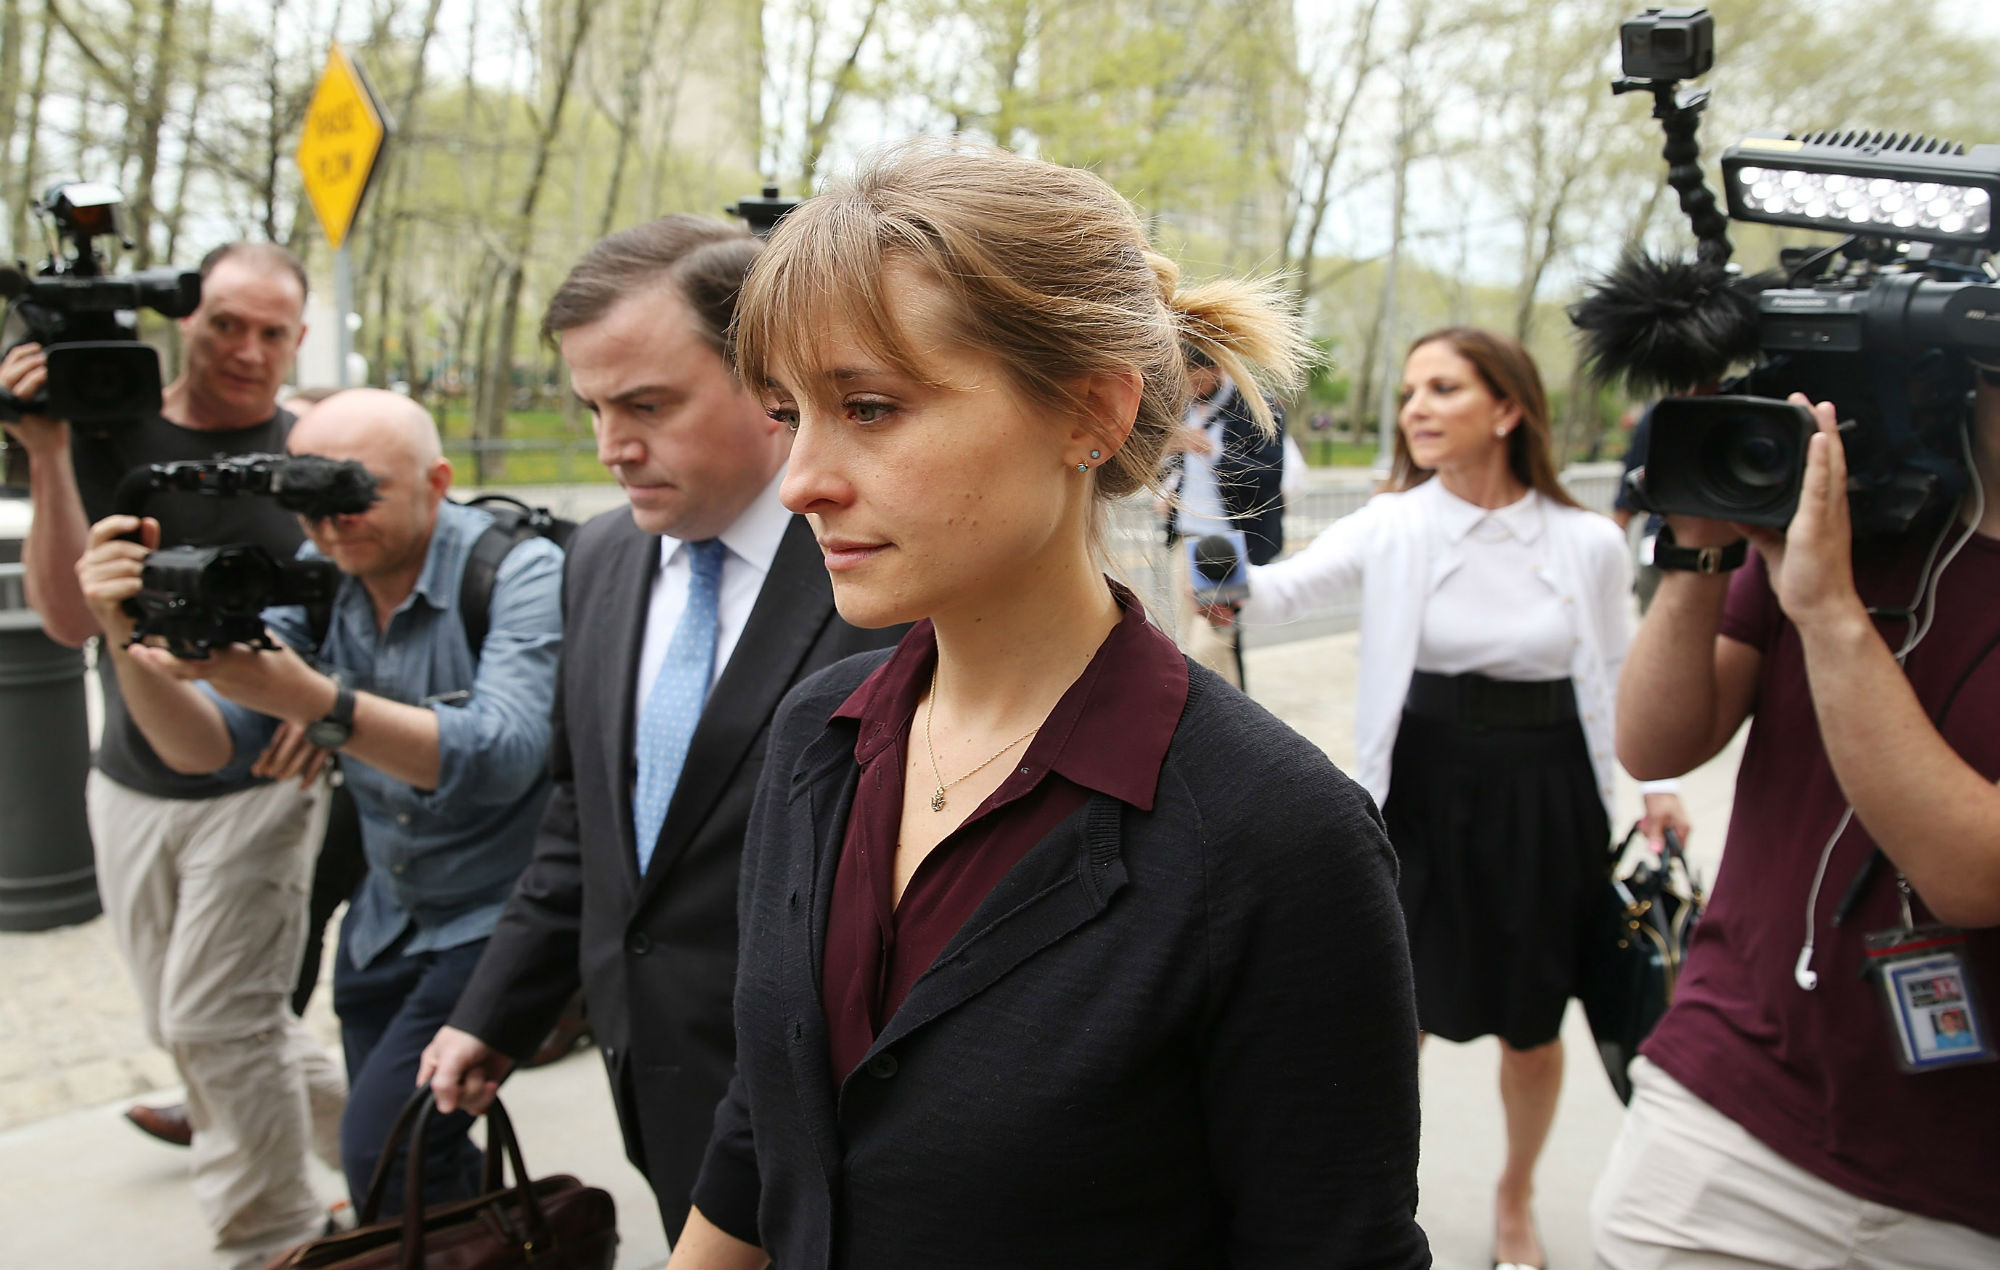 Allison Sex Video smallville' actress allison mack pleads guilty to